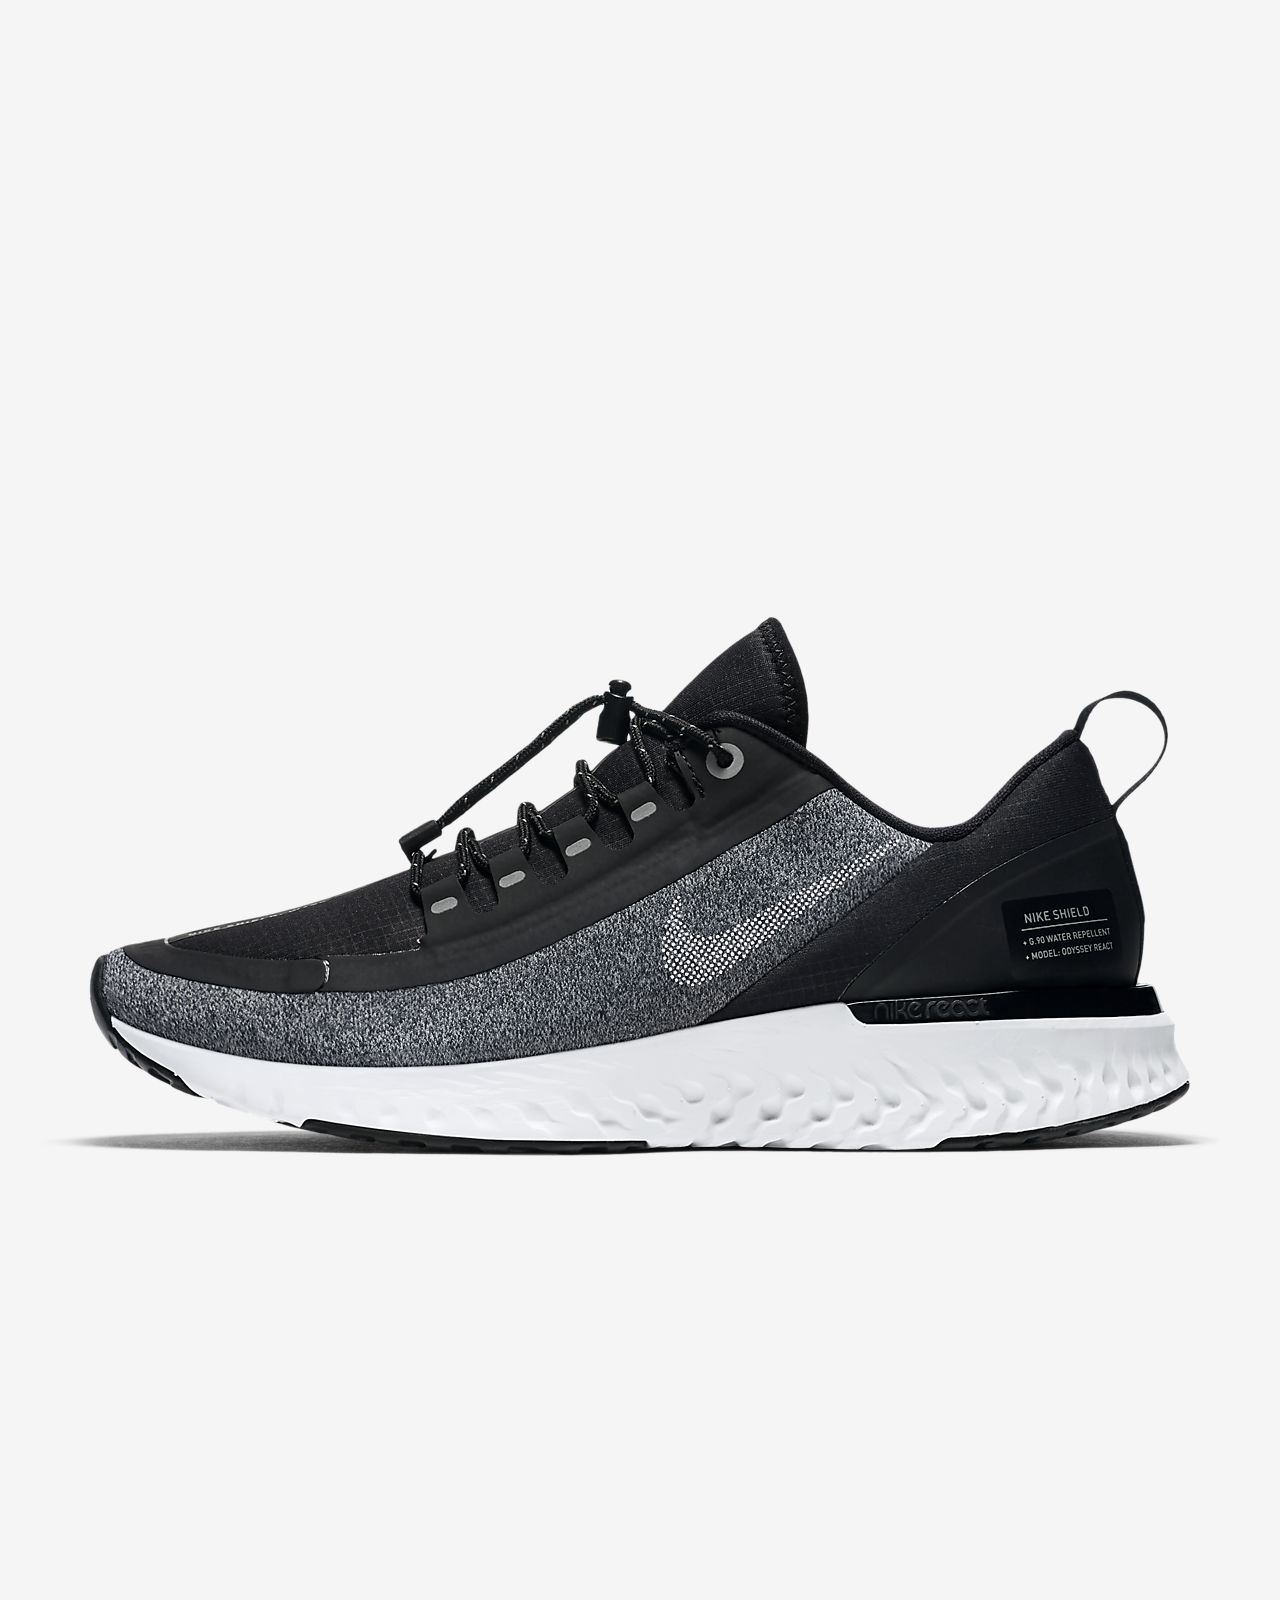 c3a6ea2806cc6 Nike Odyssey React Shield Water-Repellent Women s Running Shoe. Nike ...